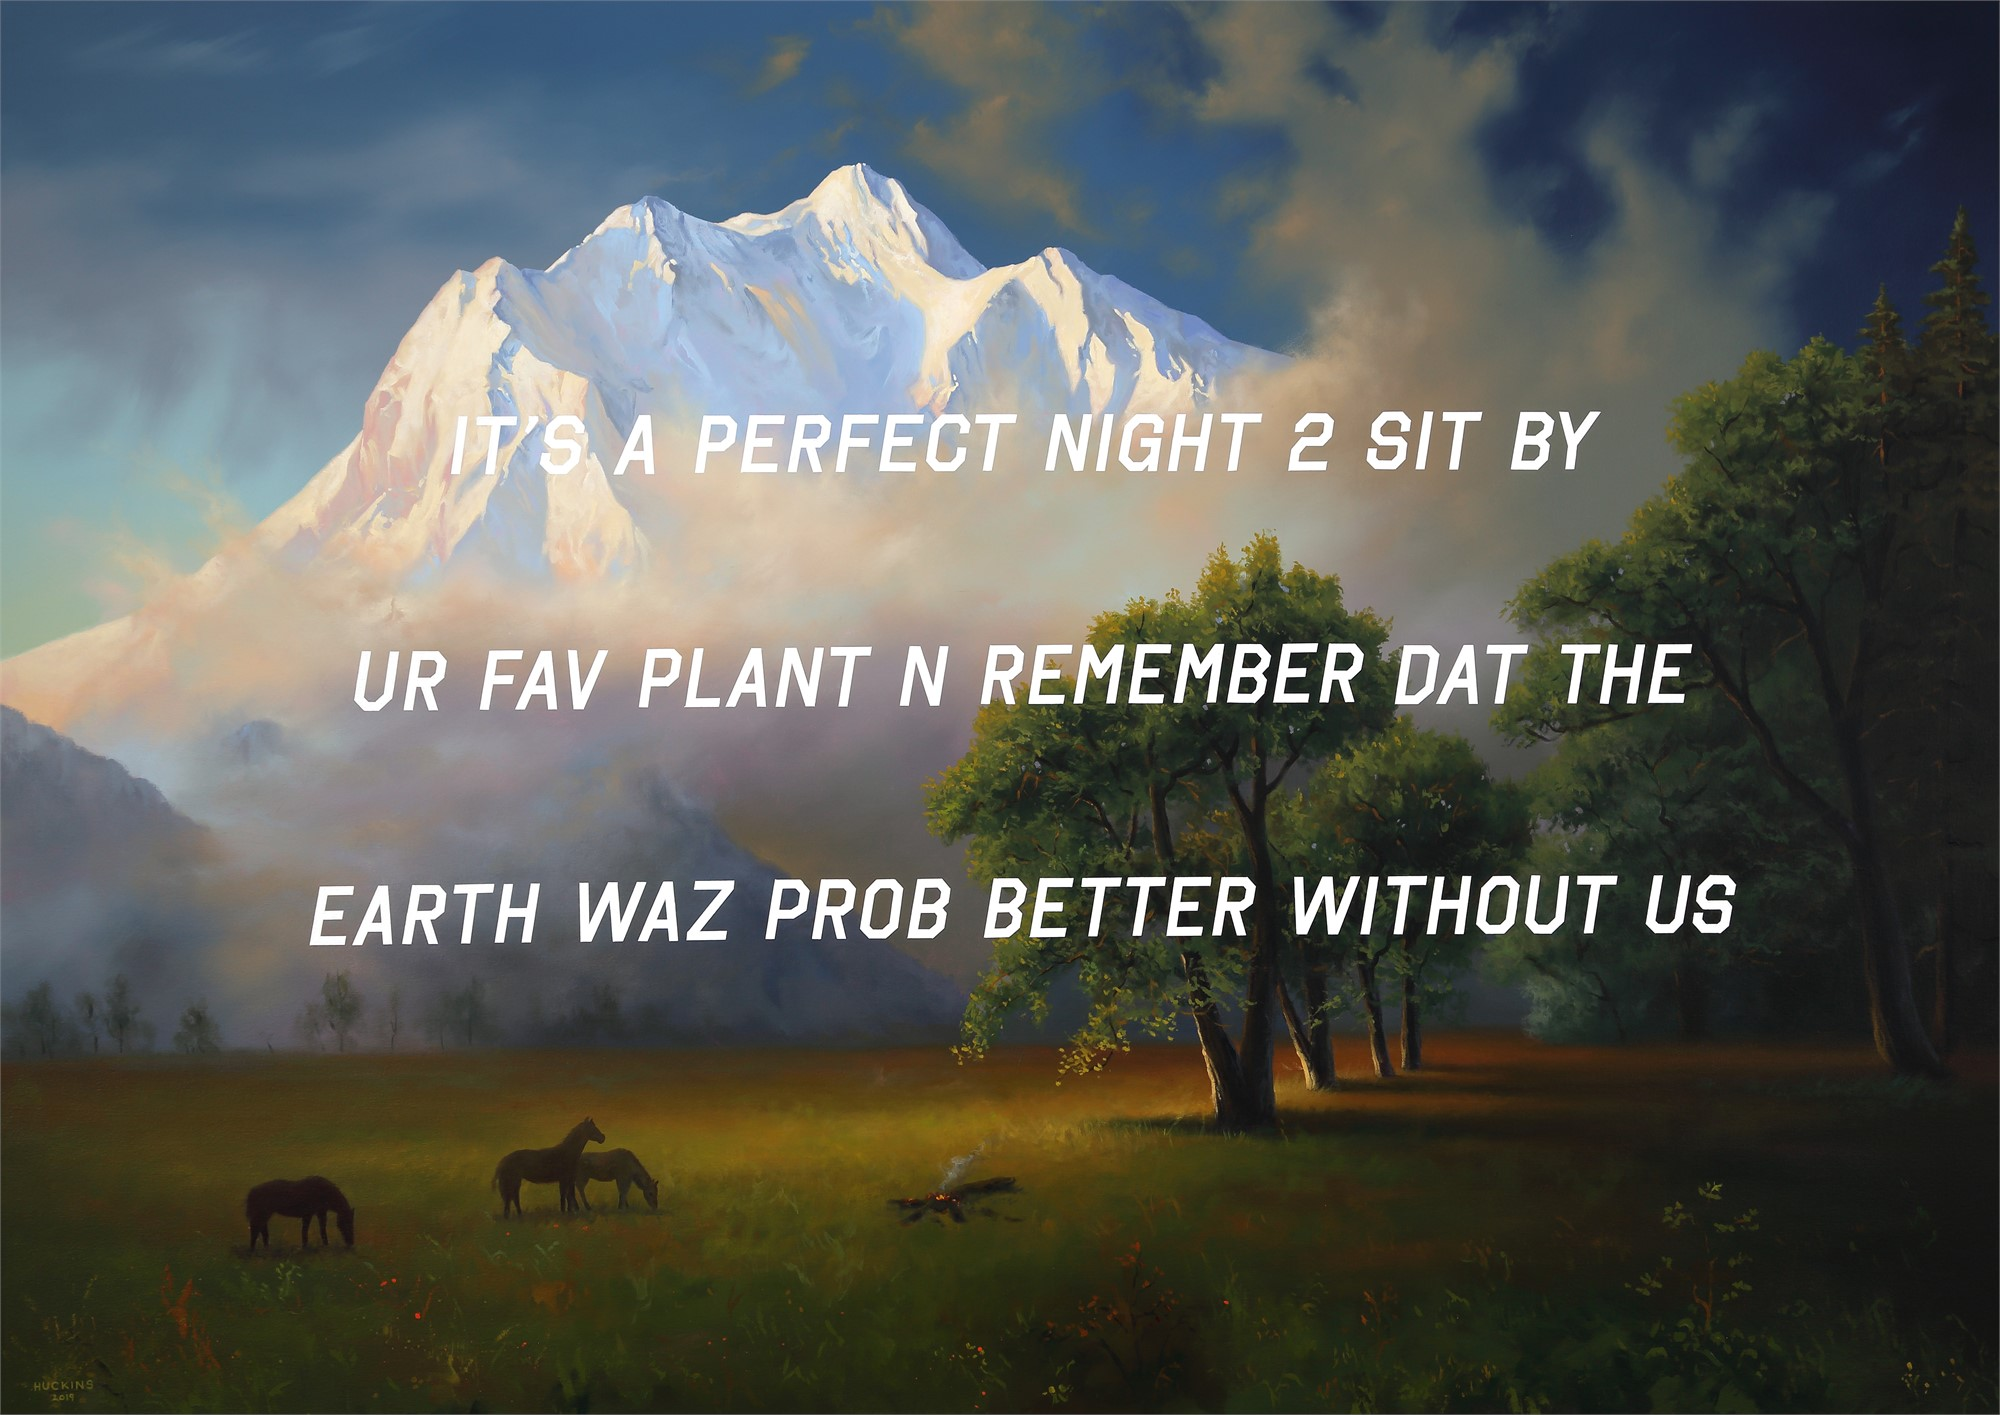 A Mountain Landscape: It's a Perfect Night to Sit By Your Favorite Plant and Remember that the Earth was probably better without Us by Shawn Huckins